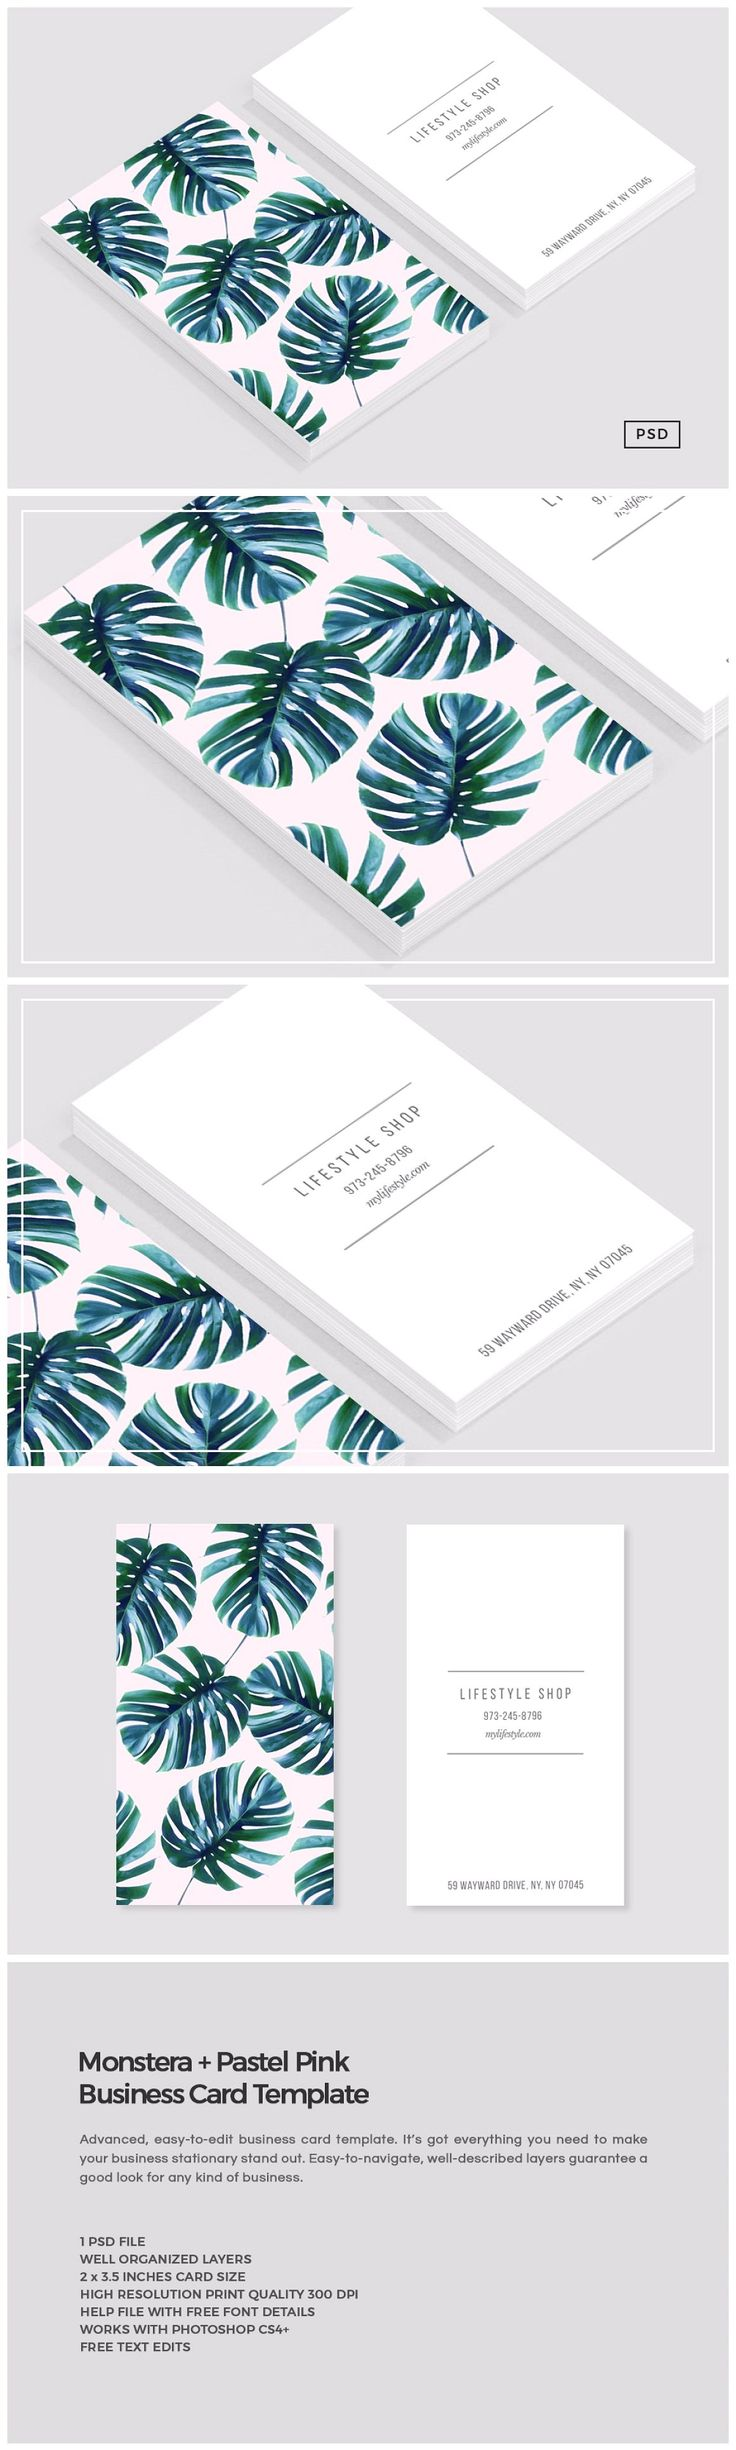 Monstera + Pastel Pink Business Card - Business Cards